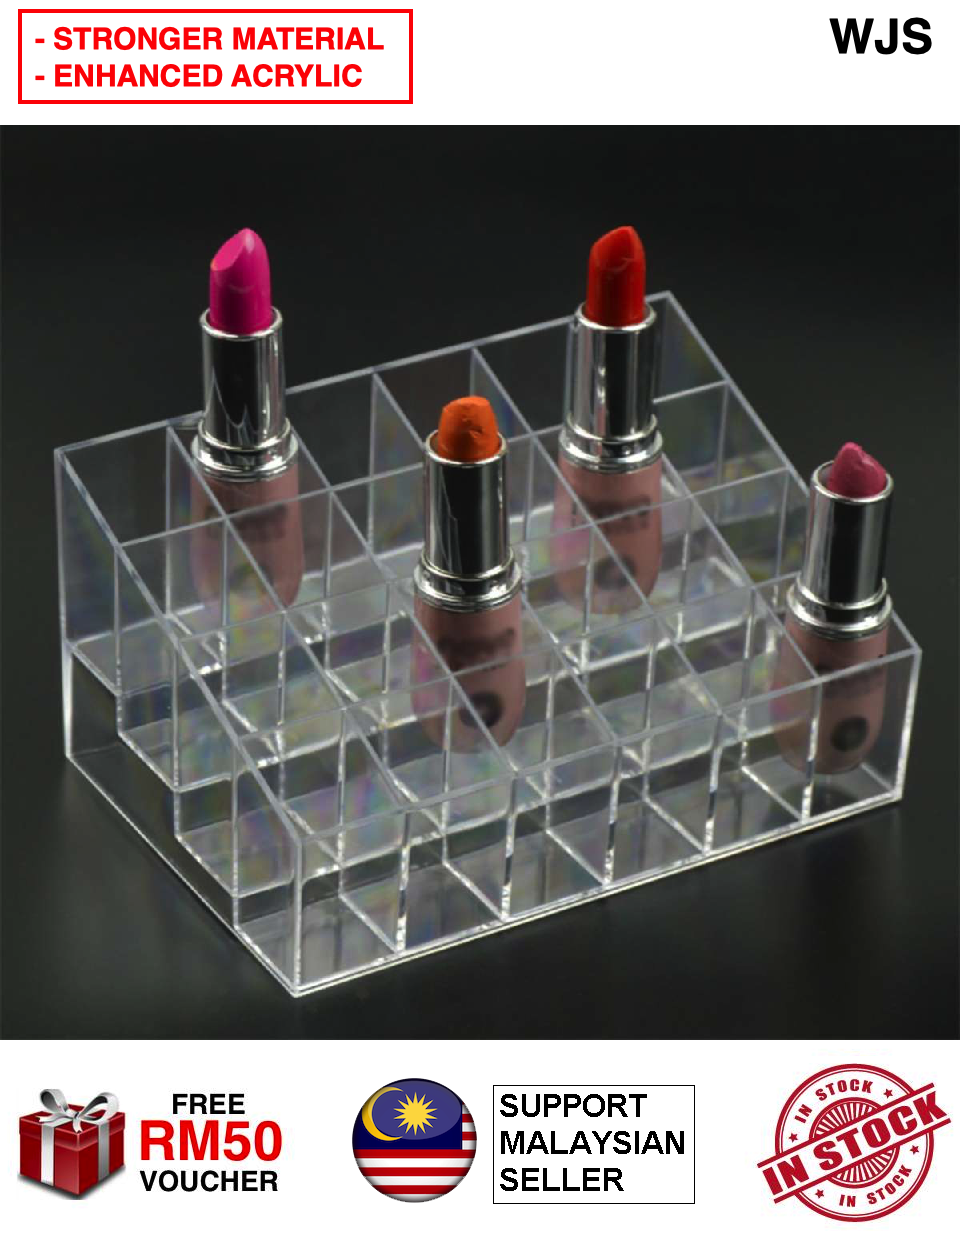 (ENHANCED MATERIAL) WJS 24-Slot Clear Acrylic Lipstick Display Holder Stand Cosmetic Organizer Organiser Make Up Stand Rack Storage Make Up Box Case Container Akrilik Gincu Solekan Crystal Clear [FREE RM 50 VOUCHER]